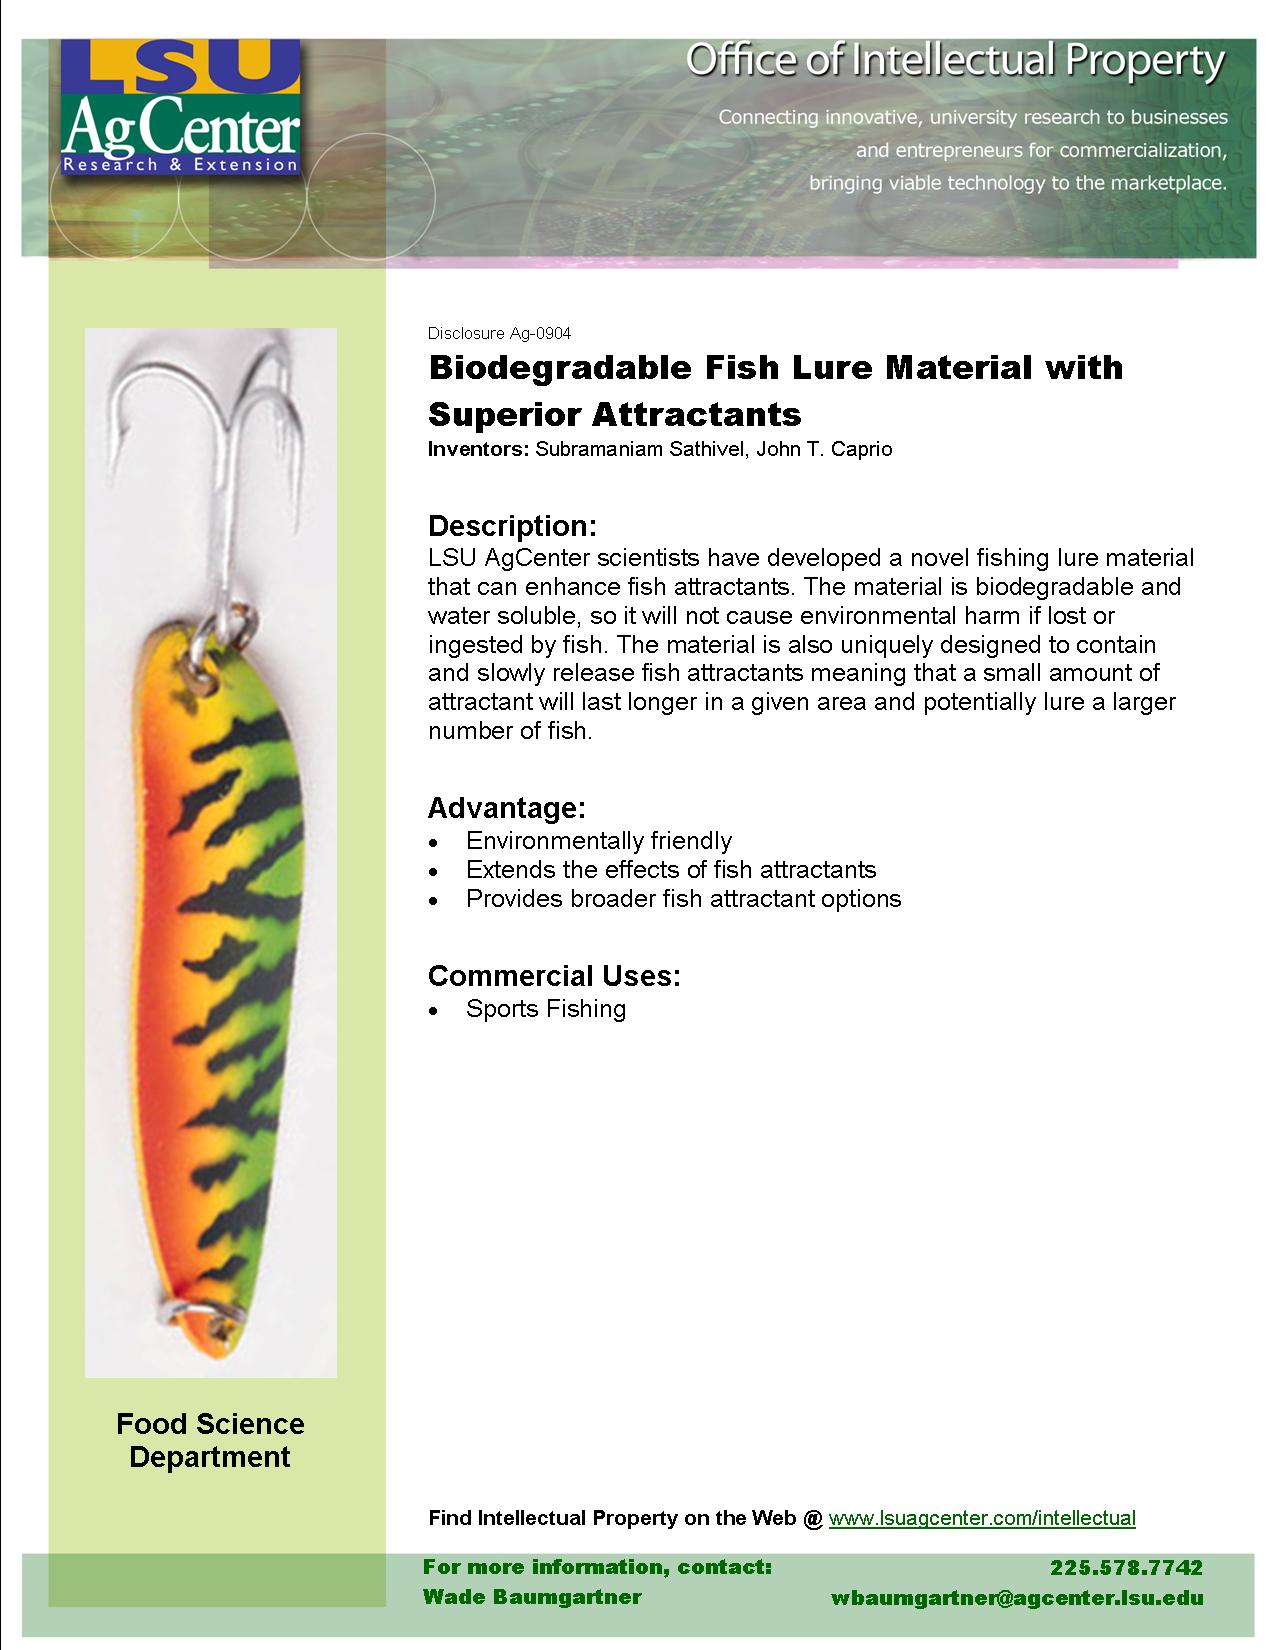 Biodegradable Fish Lure Material with Superior Attractants